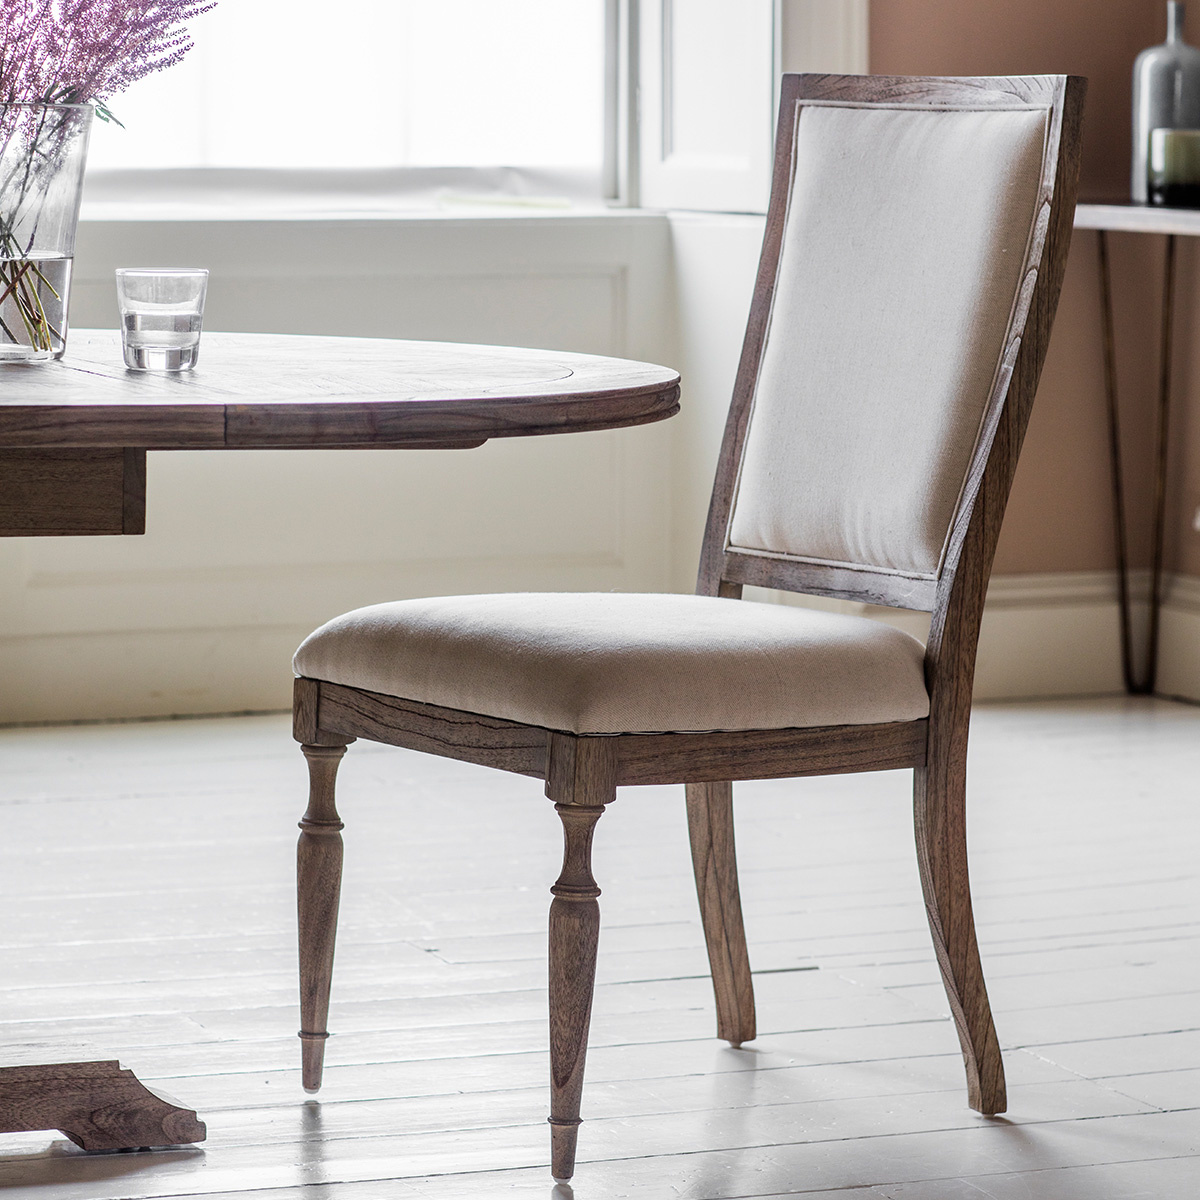 French Dining Chairs French Colonial Dining Chair Relaxed Style Fads Co Uk